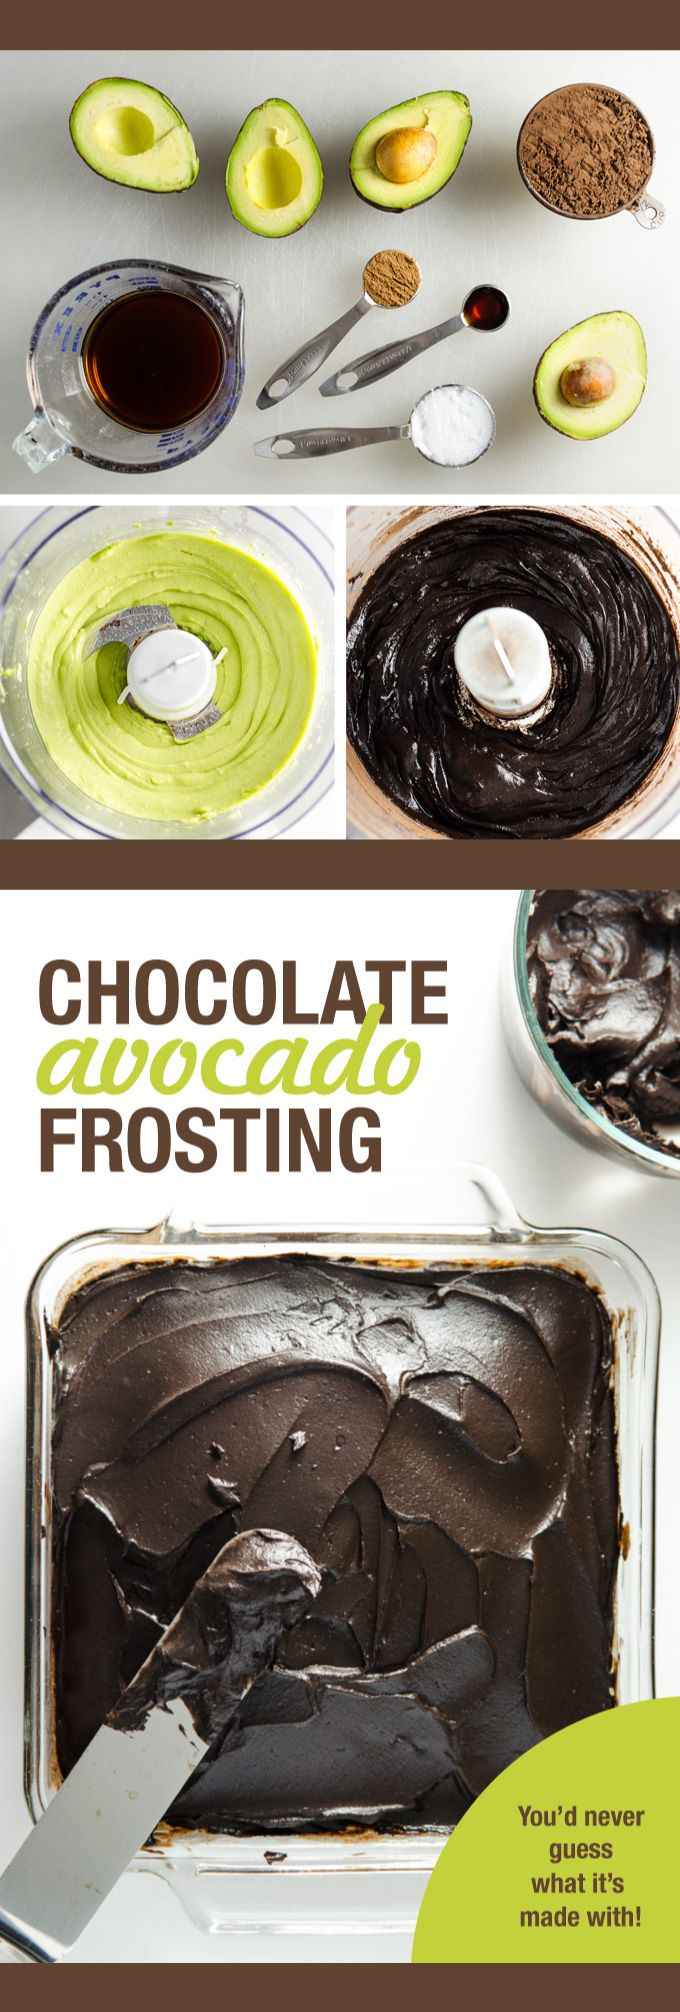 Dark Chocolate Avocado Frosting - you'd never guess this delicious vegan dairy free recipe is made with avocado! | VeggiePrimer.com